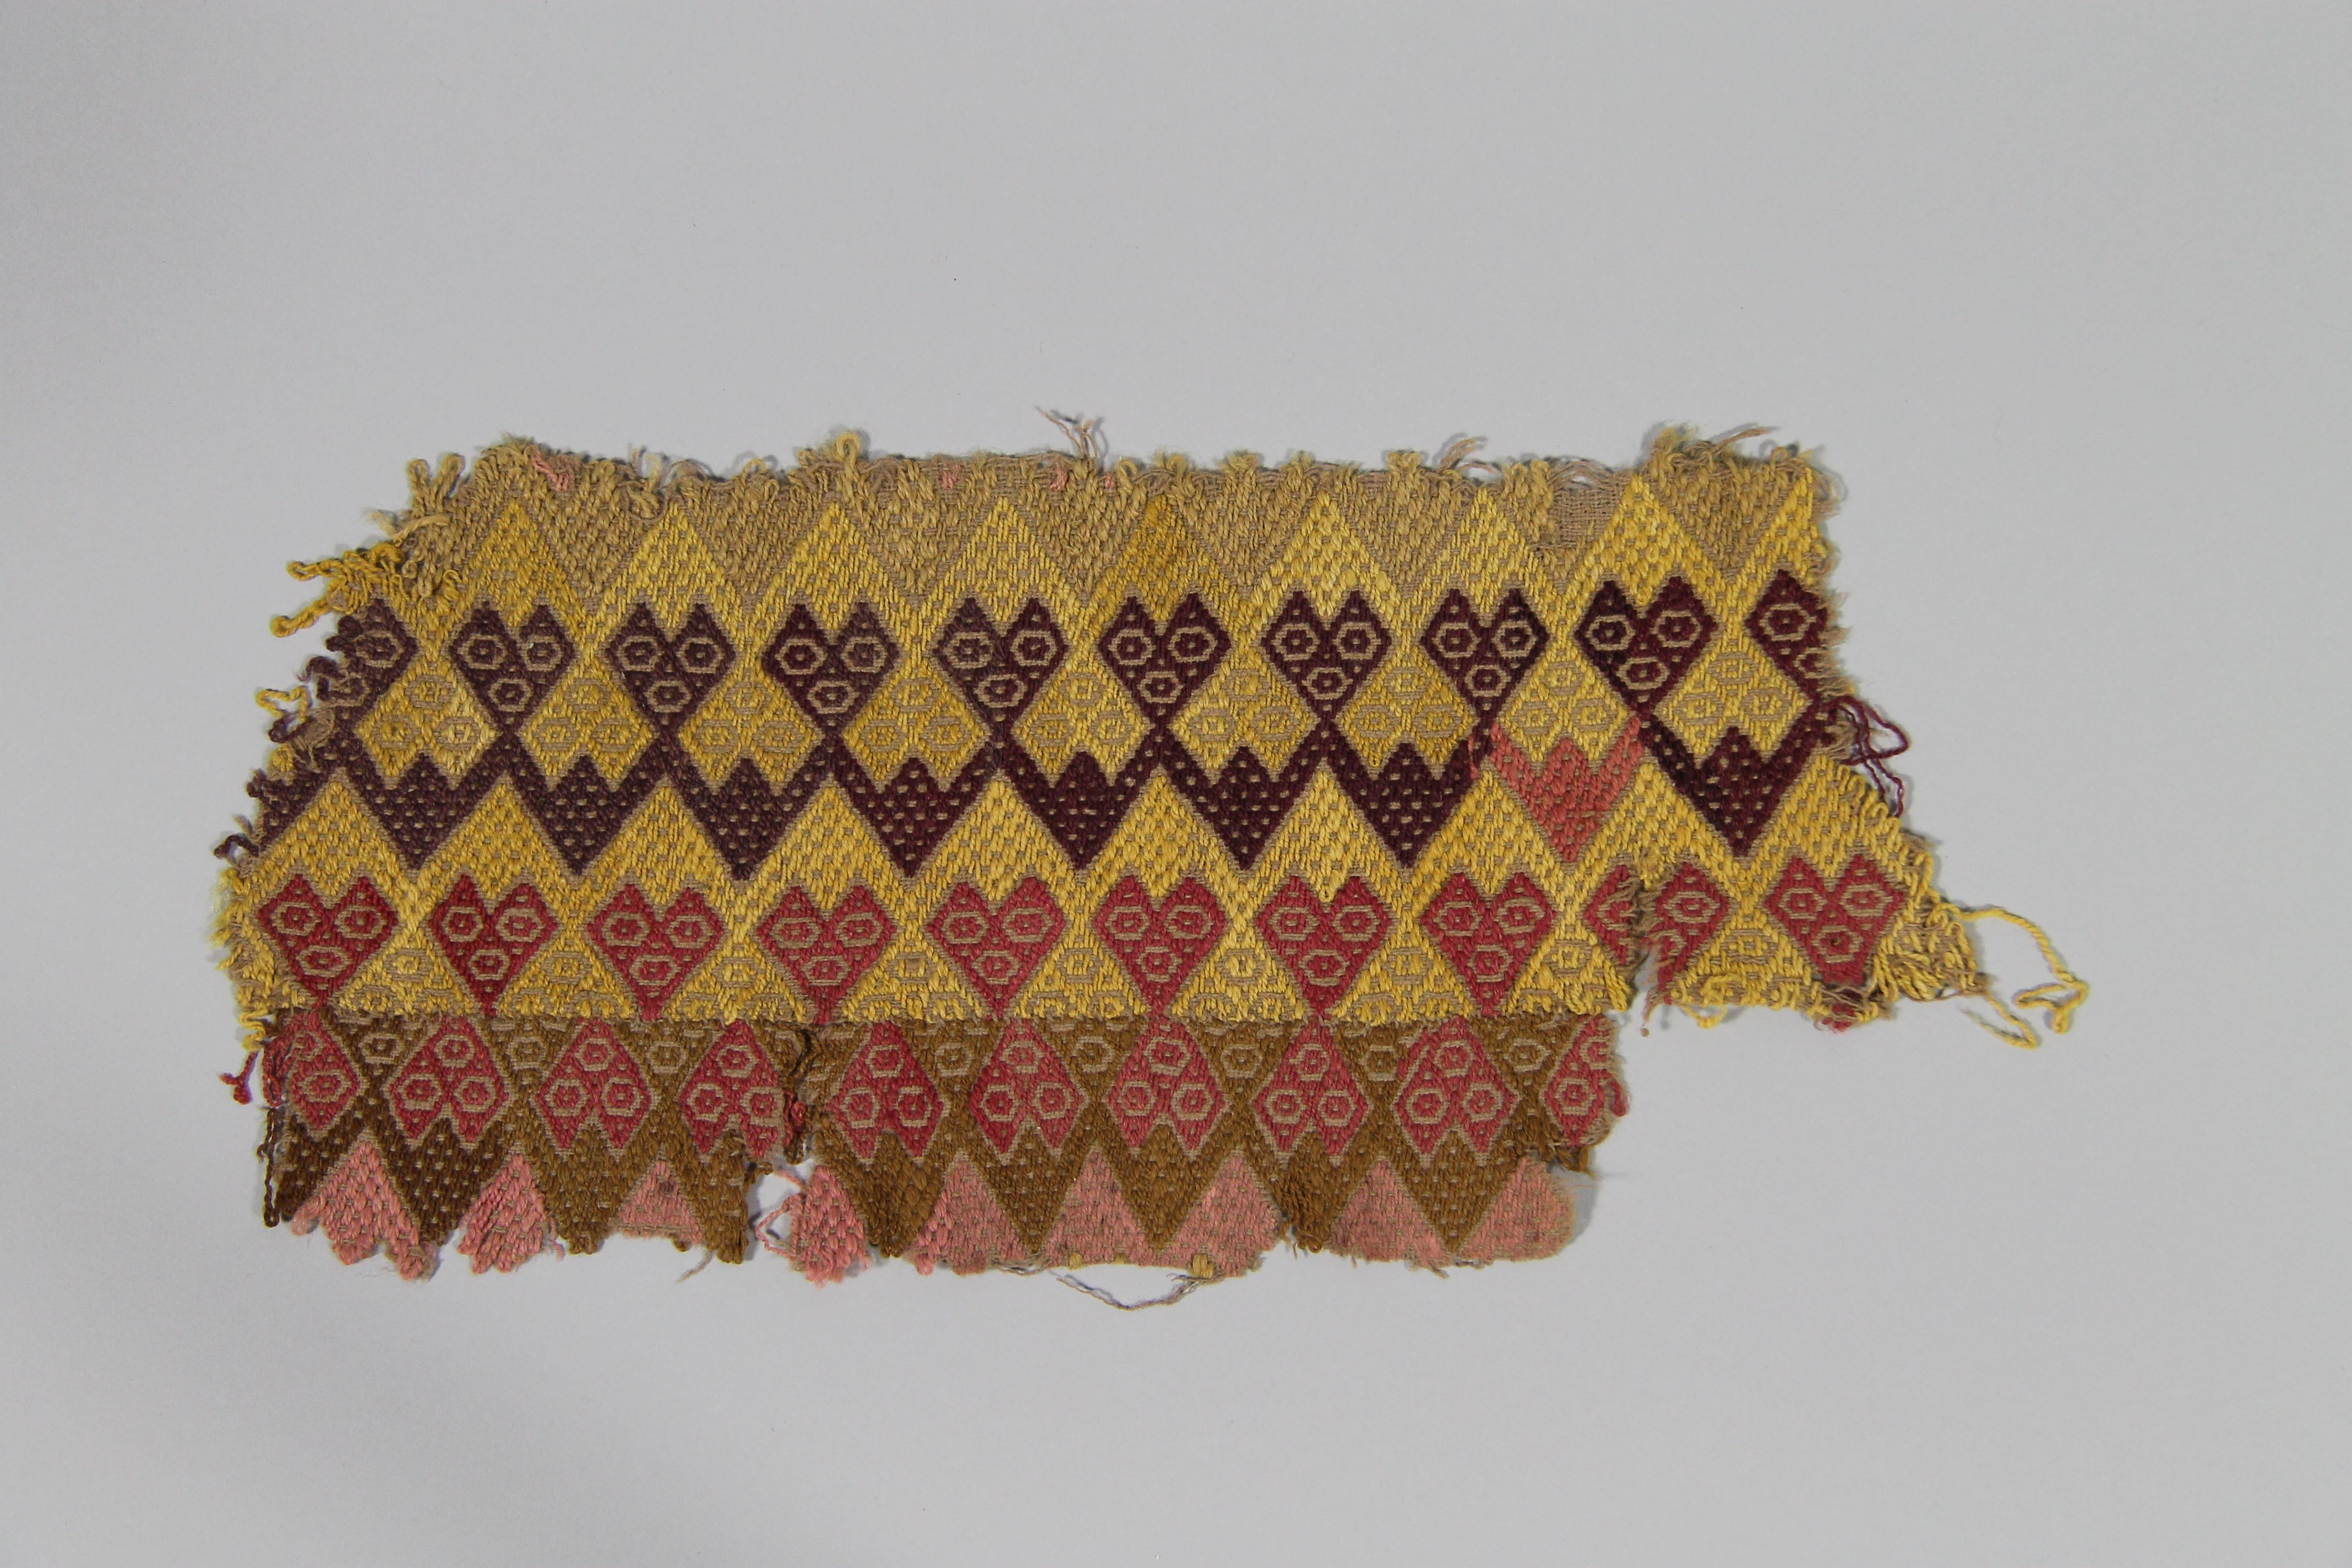 Embroidered textile (fragment)